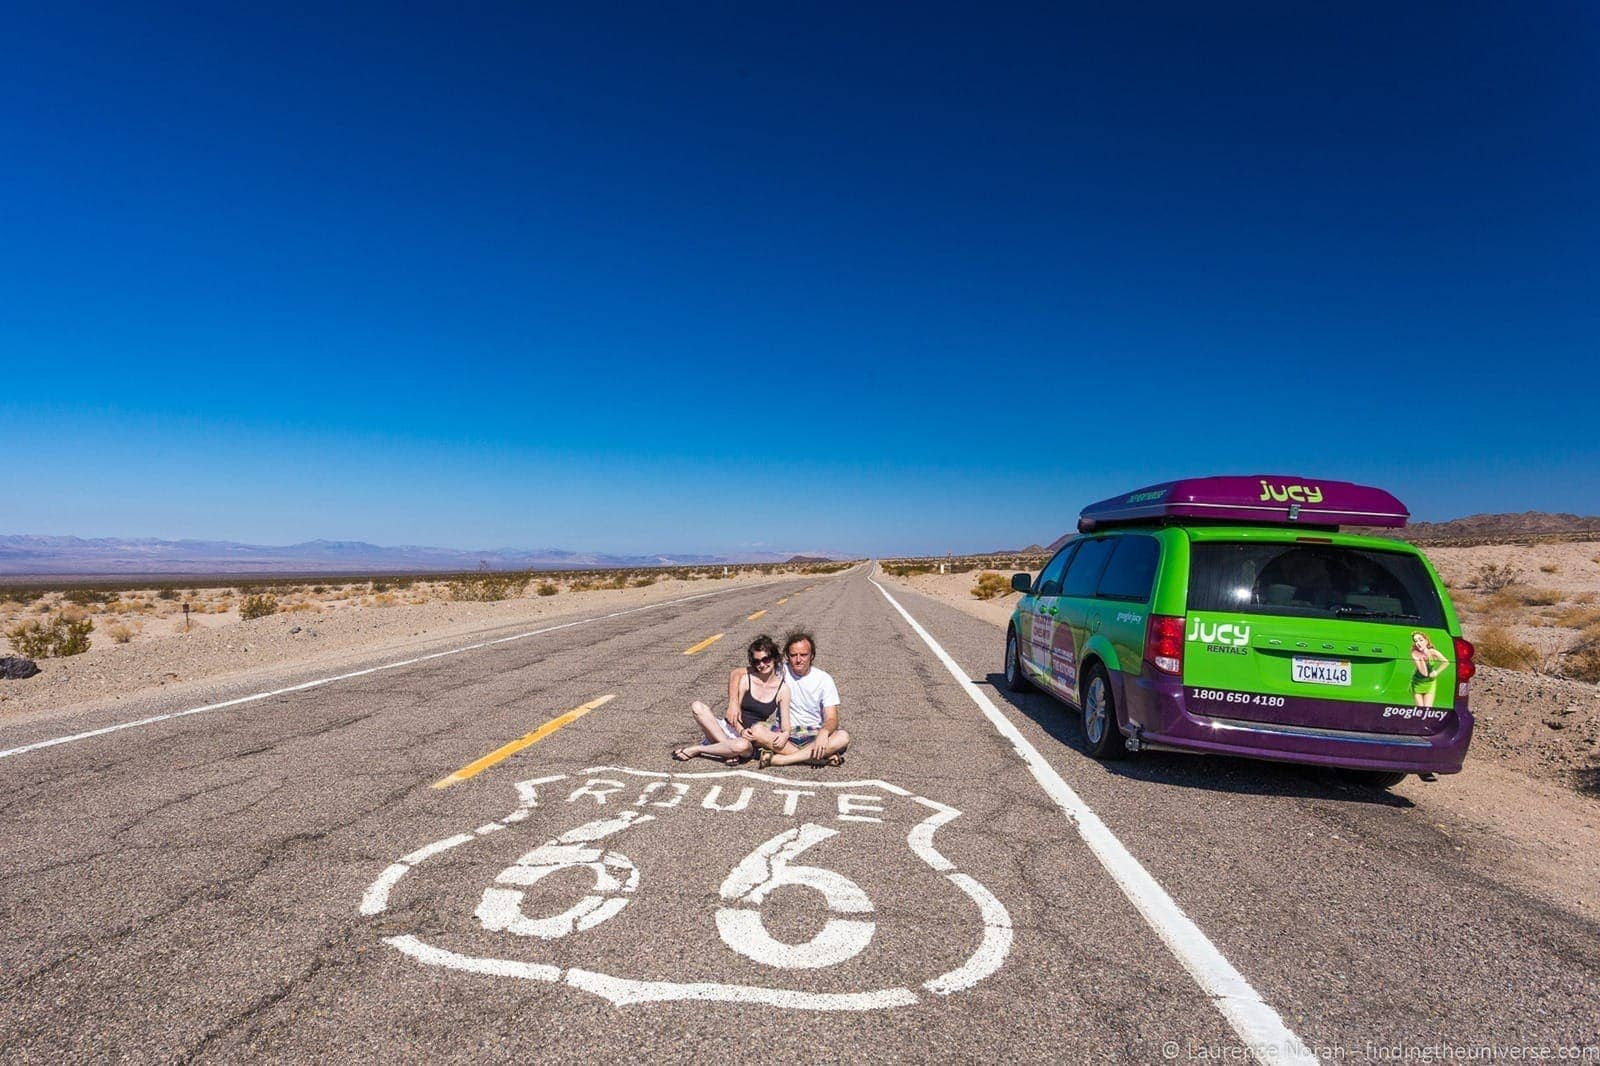 Jucy Champ RV on Route 66_by_Laurence Norah-27